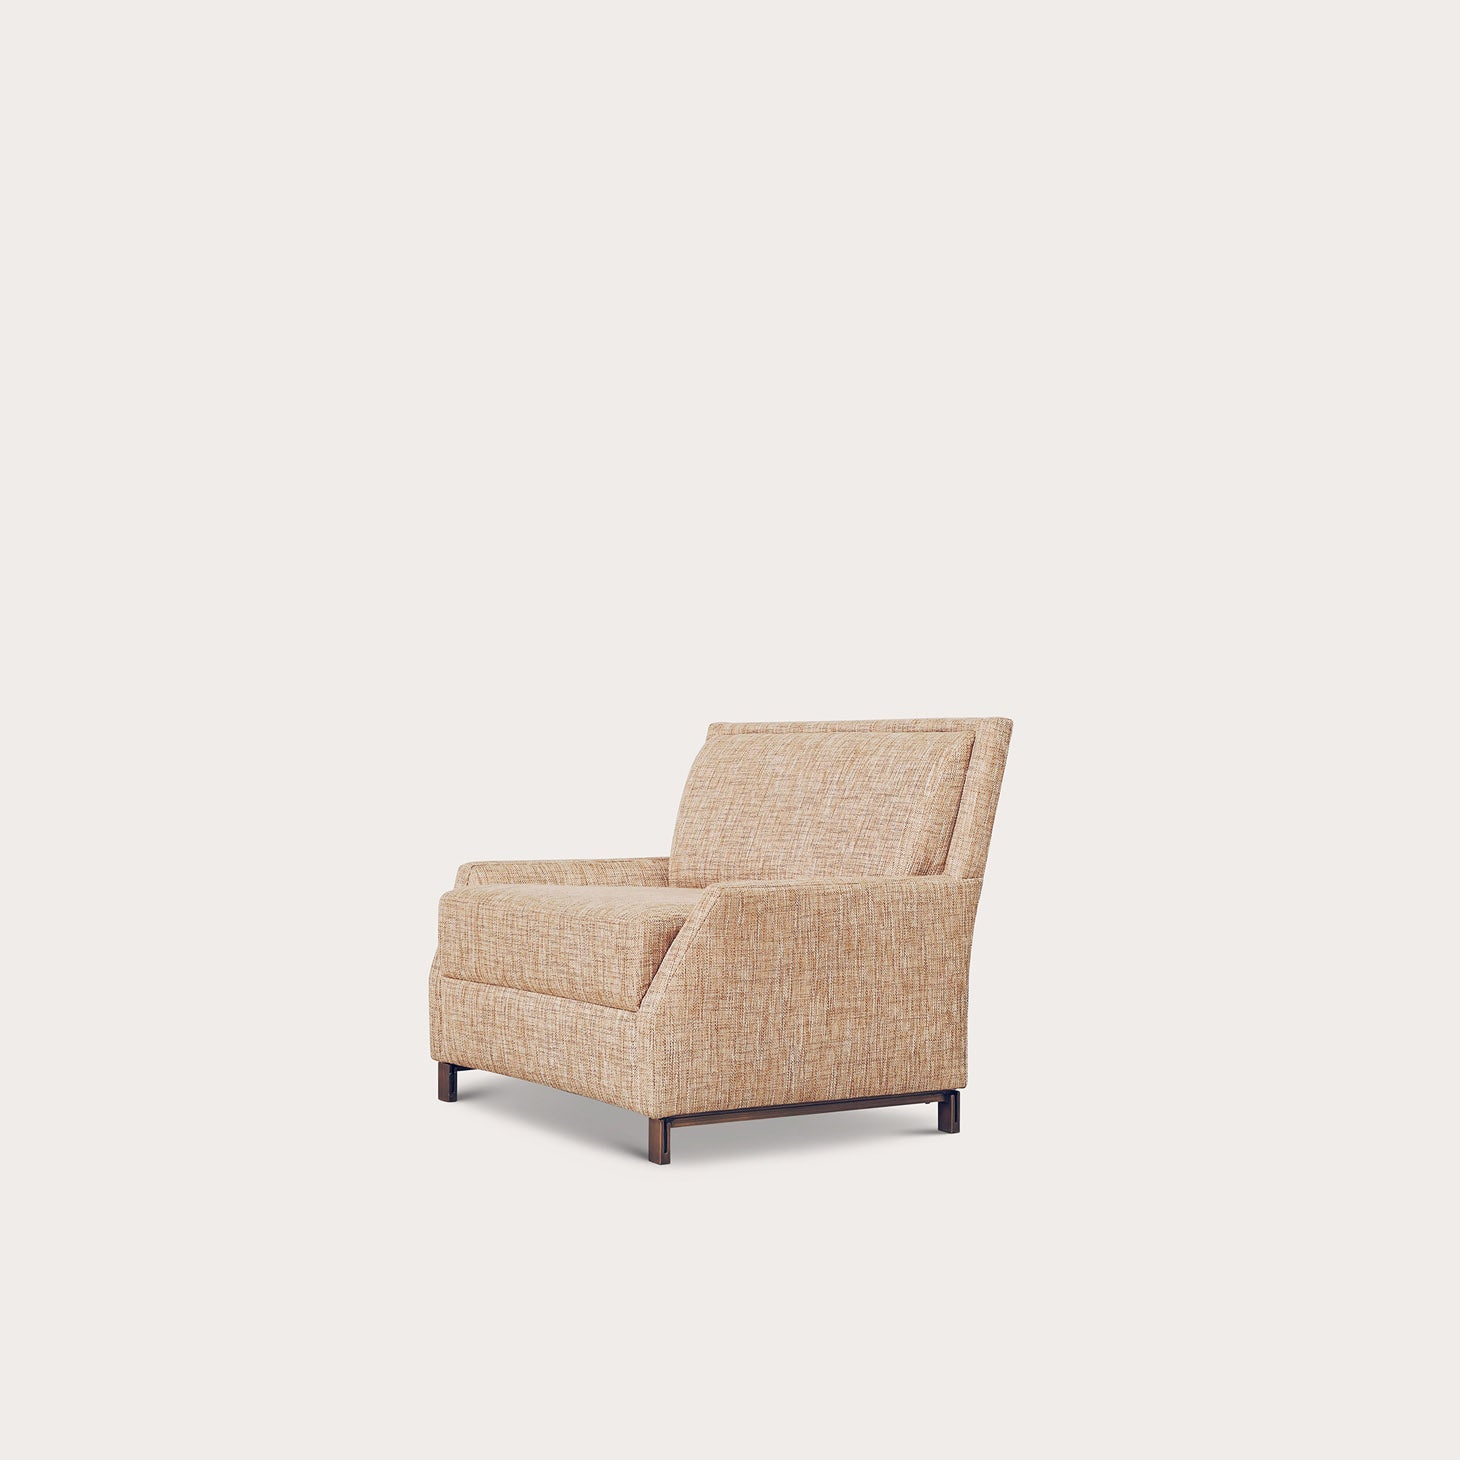 Perry Street Moon Seating Yabu Pushelberg Designer Furniture Sku: 990-240-10003